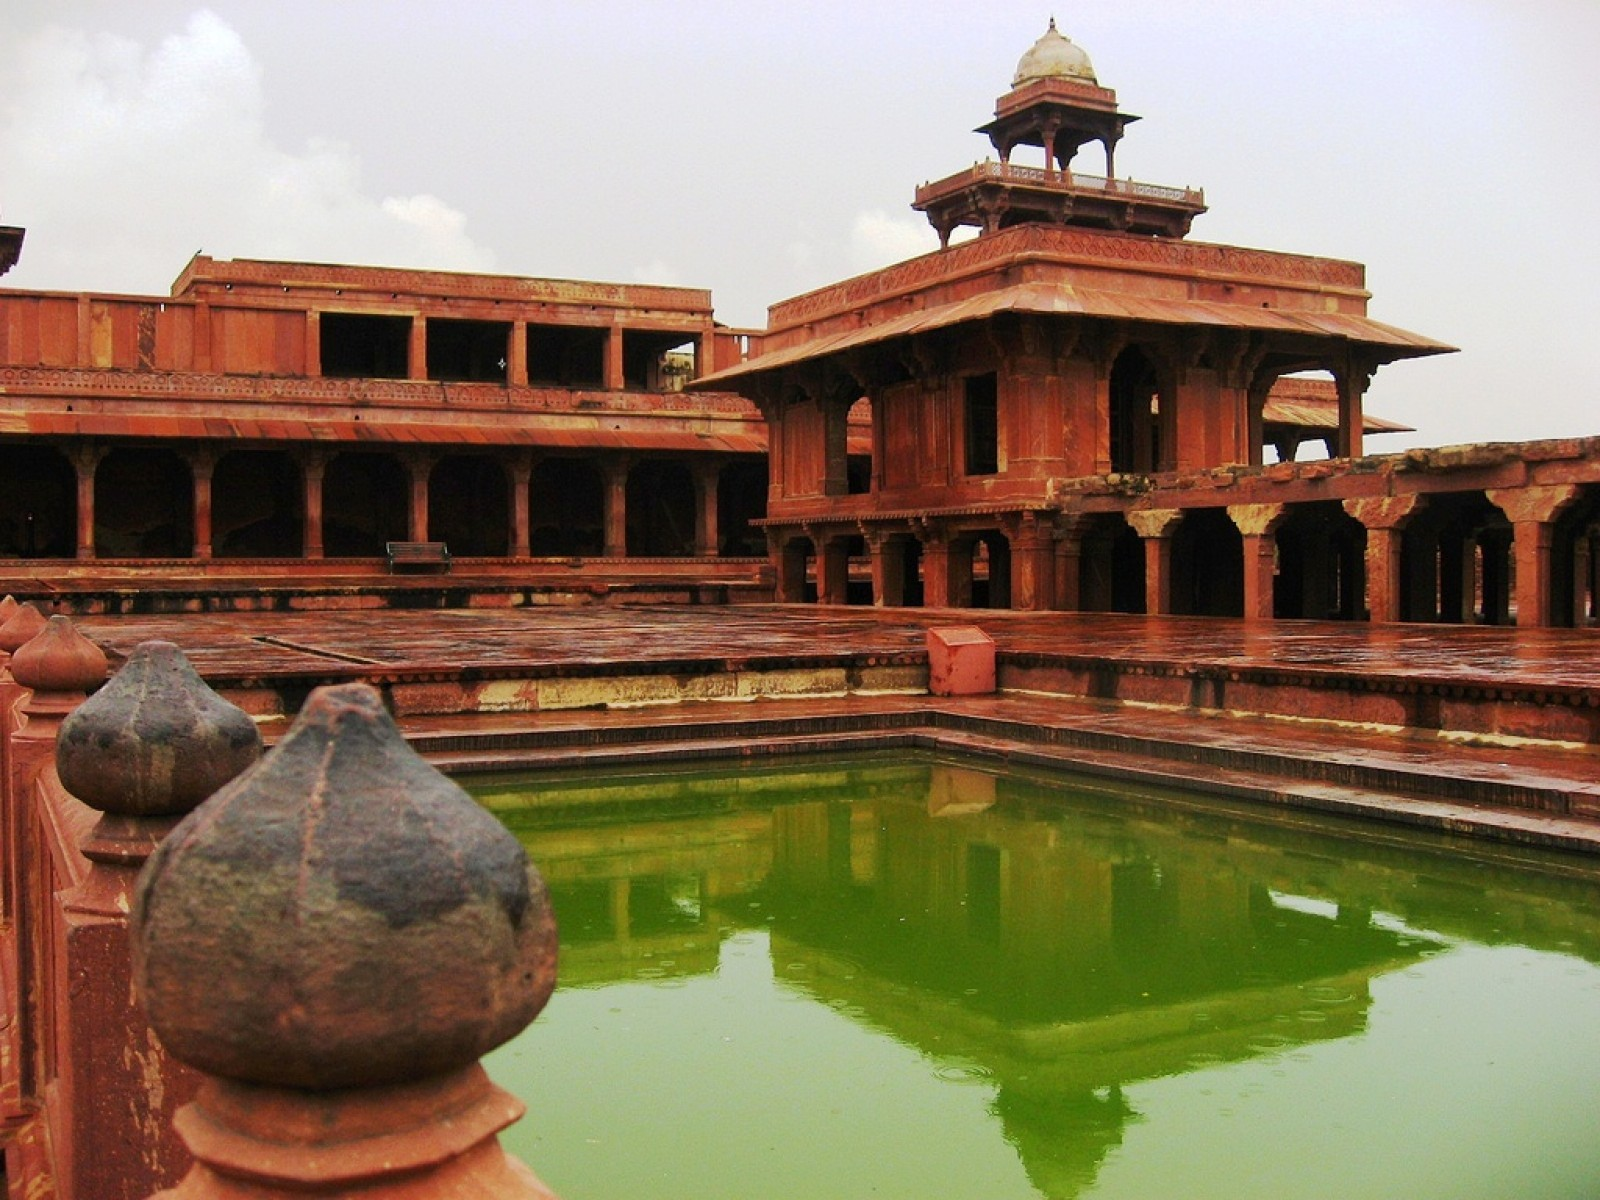 Fatehpur Sikri India  city images : Fatehpur Sikri [PC: Google]